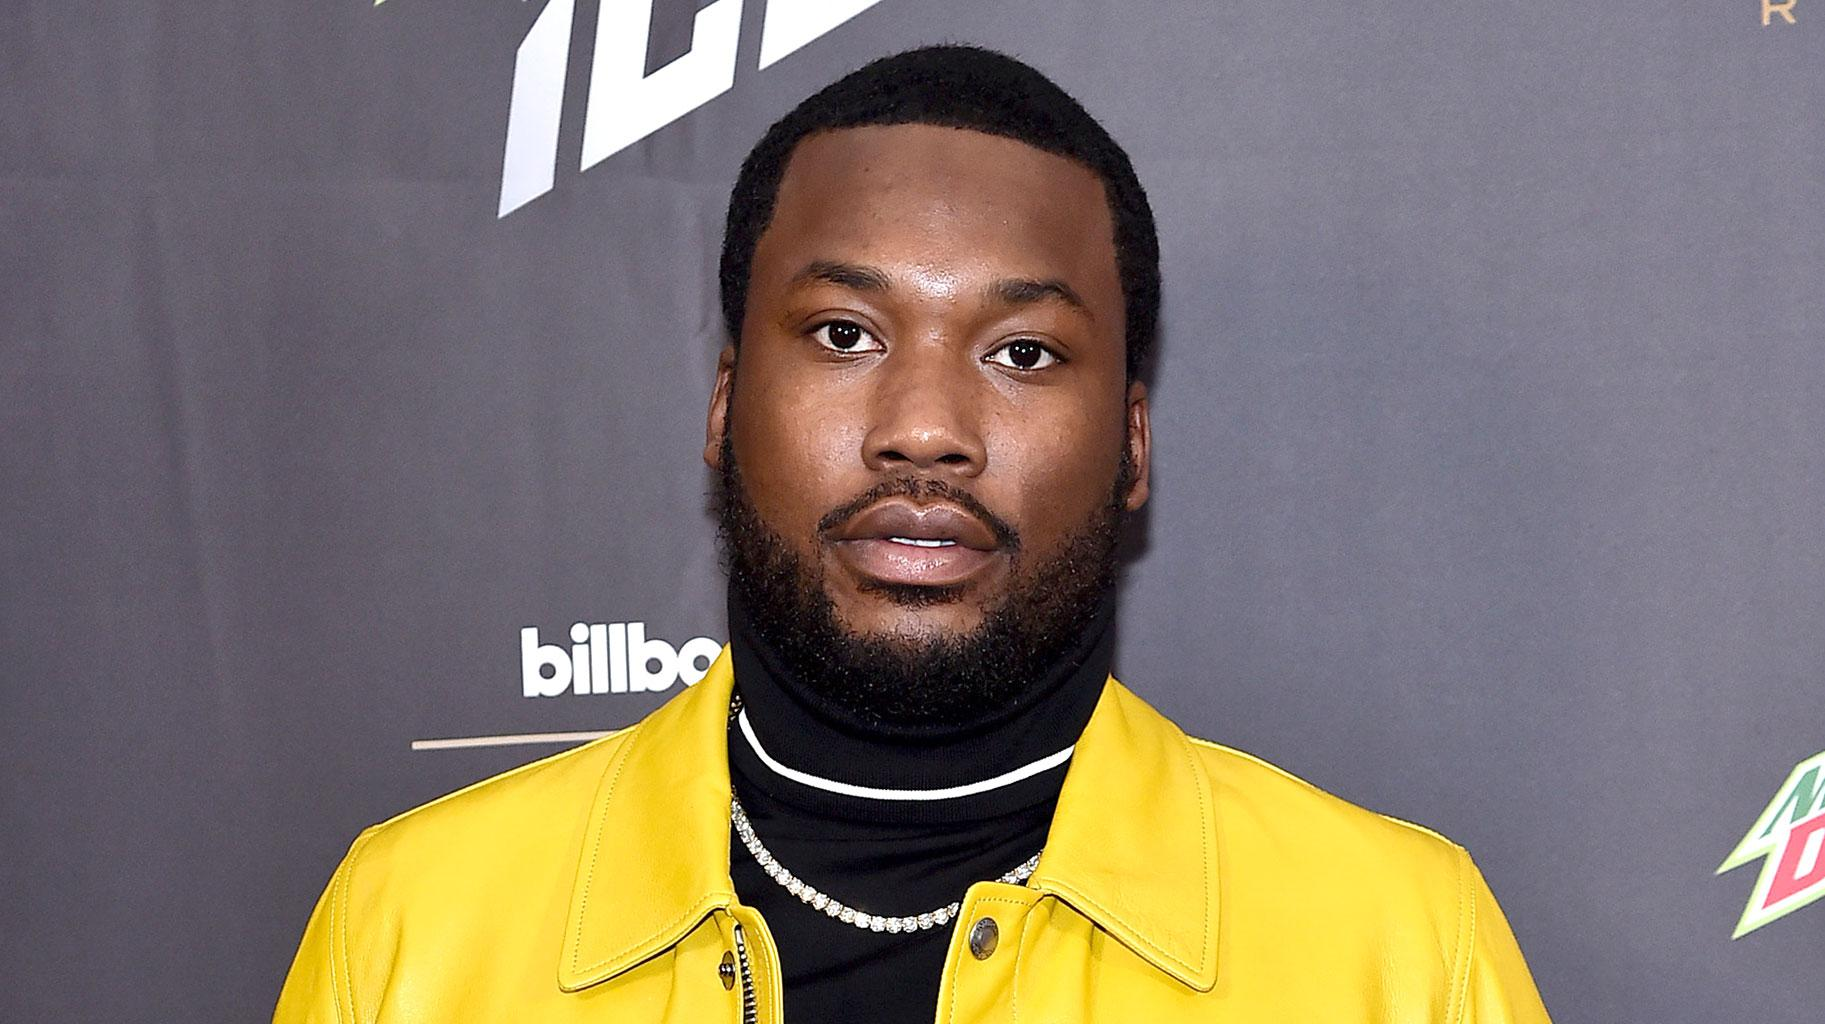 Meek Mill's Breakup Announcement Has Fans Laughing Their Hearts Out